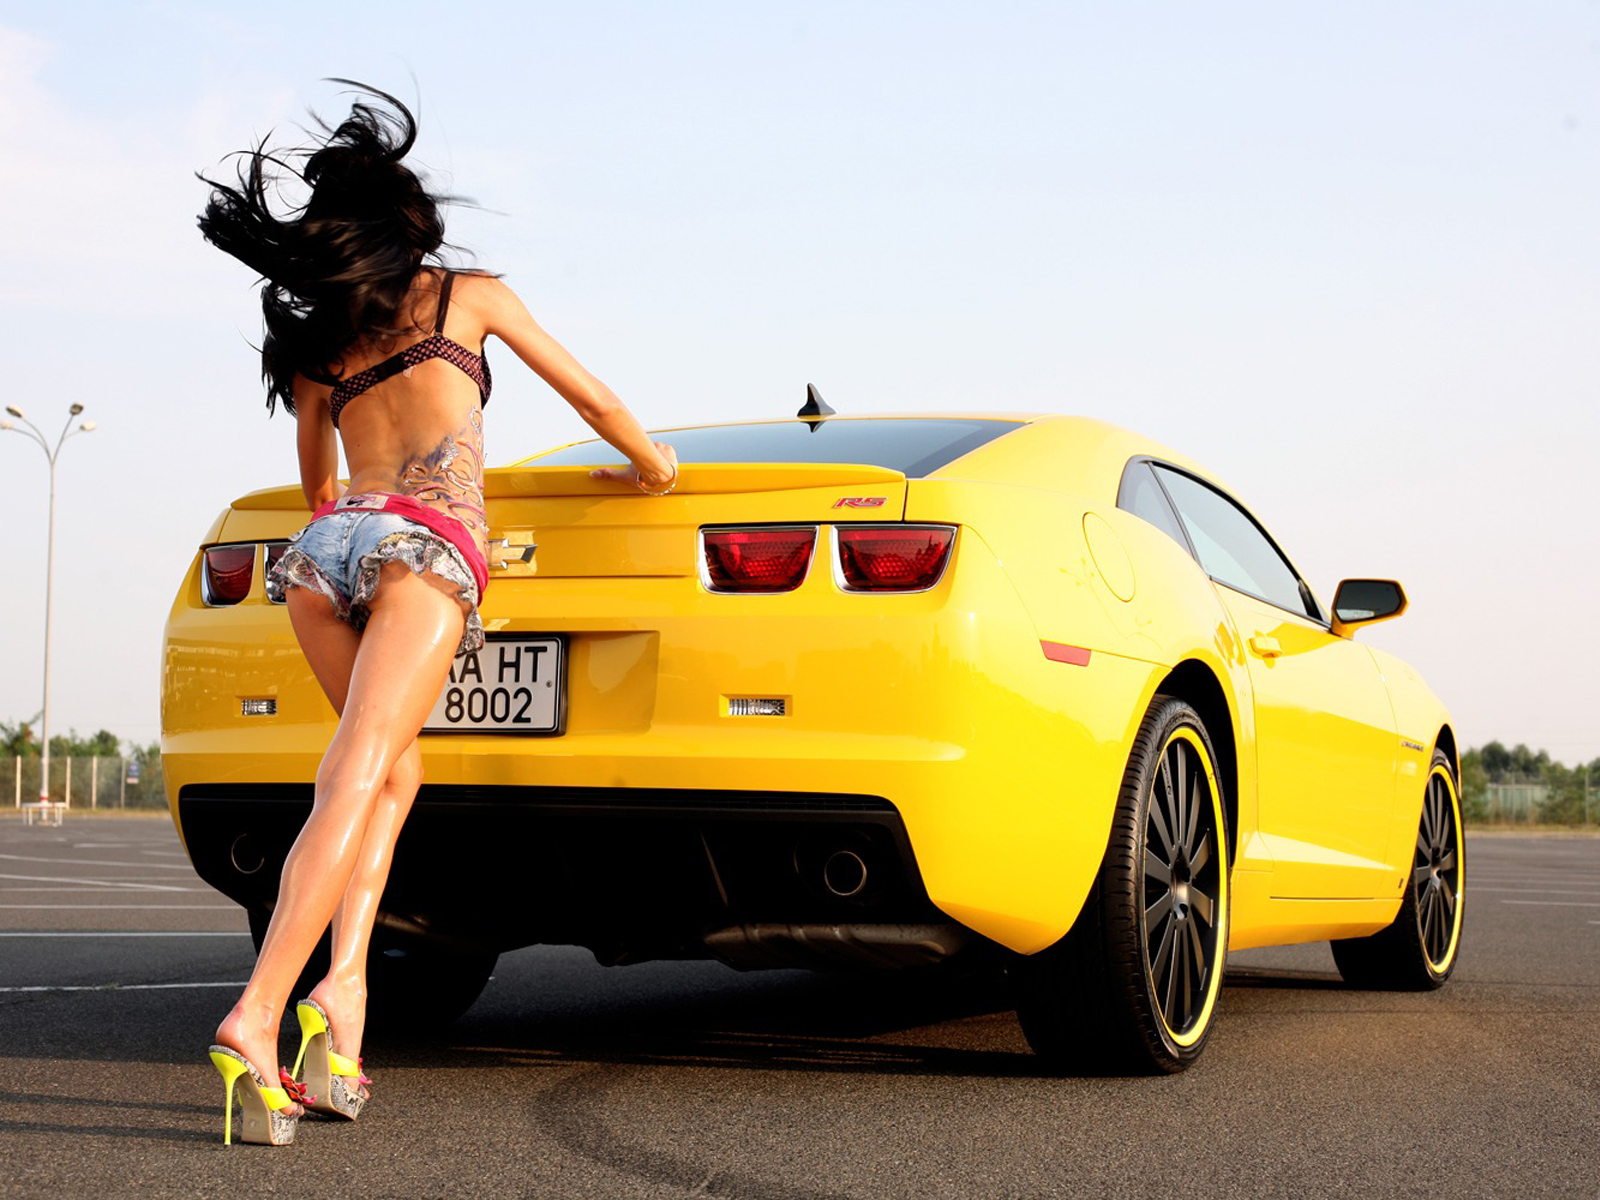 Sports Car With Girl Hd Wallpaper - Car Wallpapers With Hot Girls , HD Wallpaper & Backgrounds